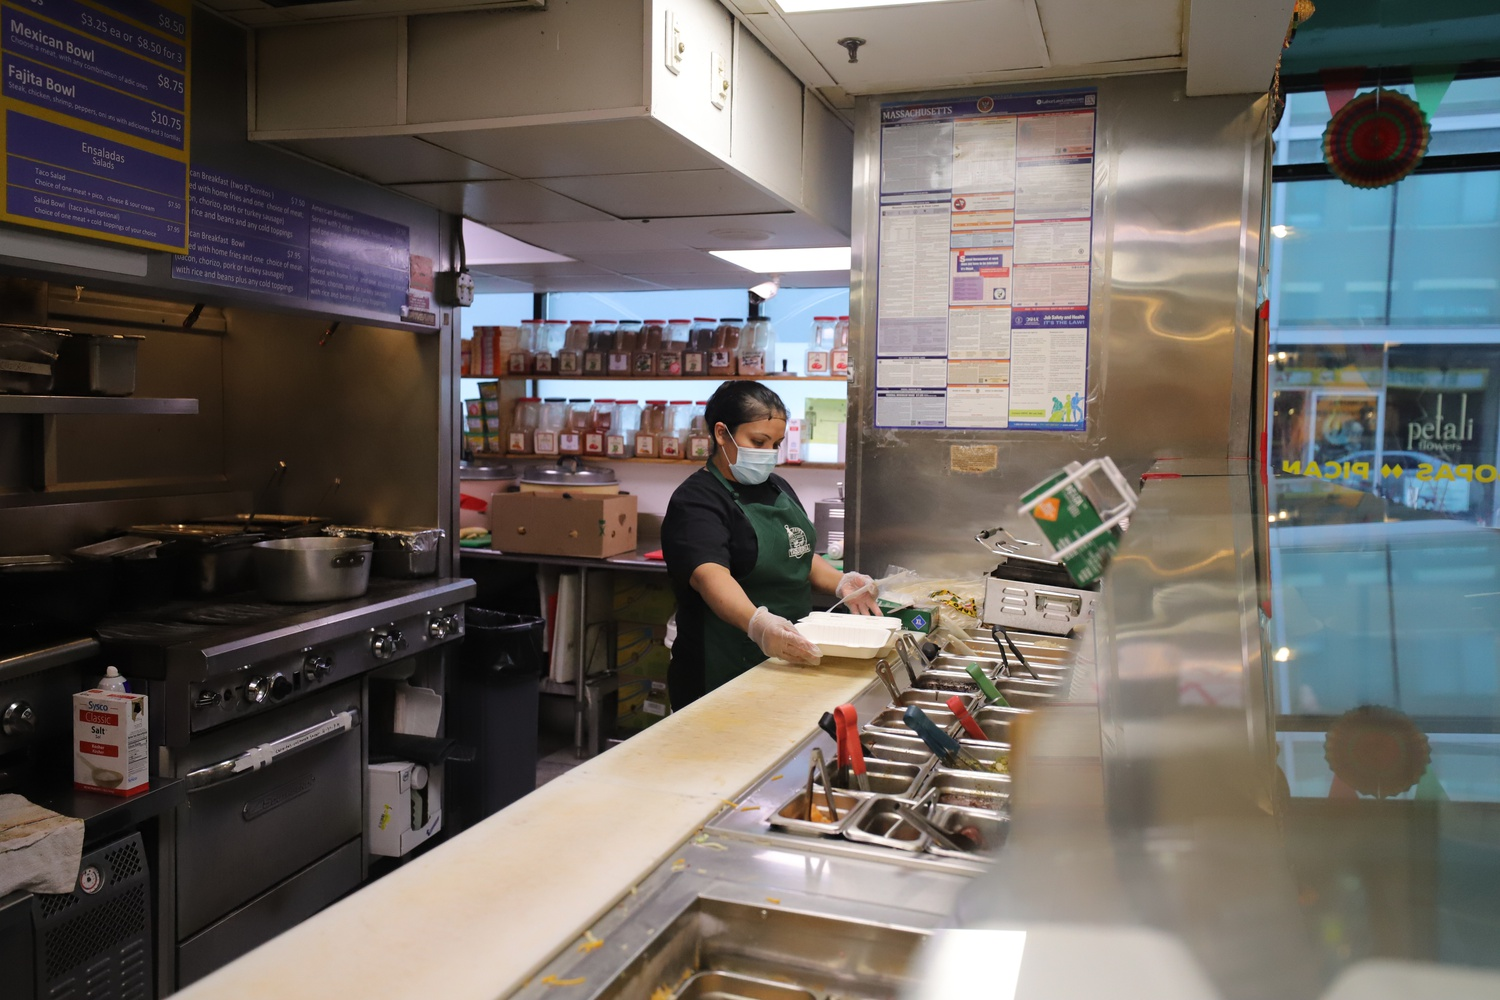 Gloria, a cook at El Jefe's Taqueria on Mt. Auburn Street prepares tacos for a takeout order. Unlike many other restaurants in Harvard Square, El Jefe's has not reduced its operating hours and remains open 20 hours a day, from 8 a.m. to 4 a.m.